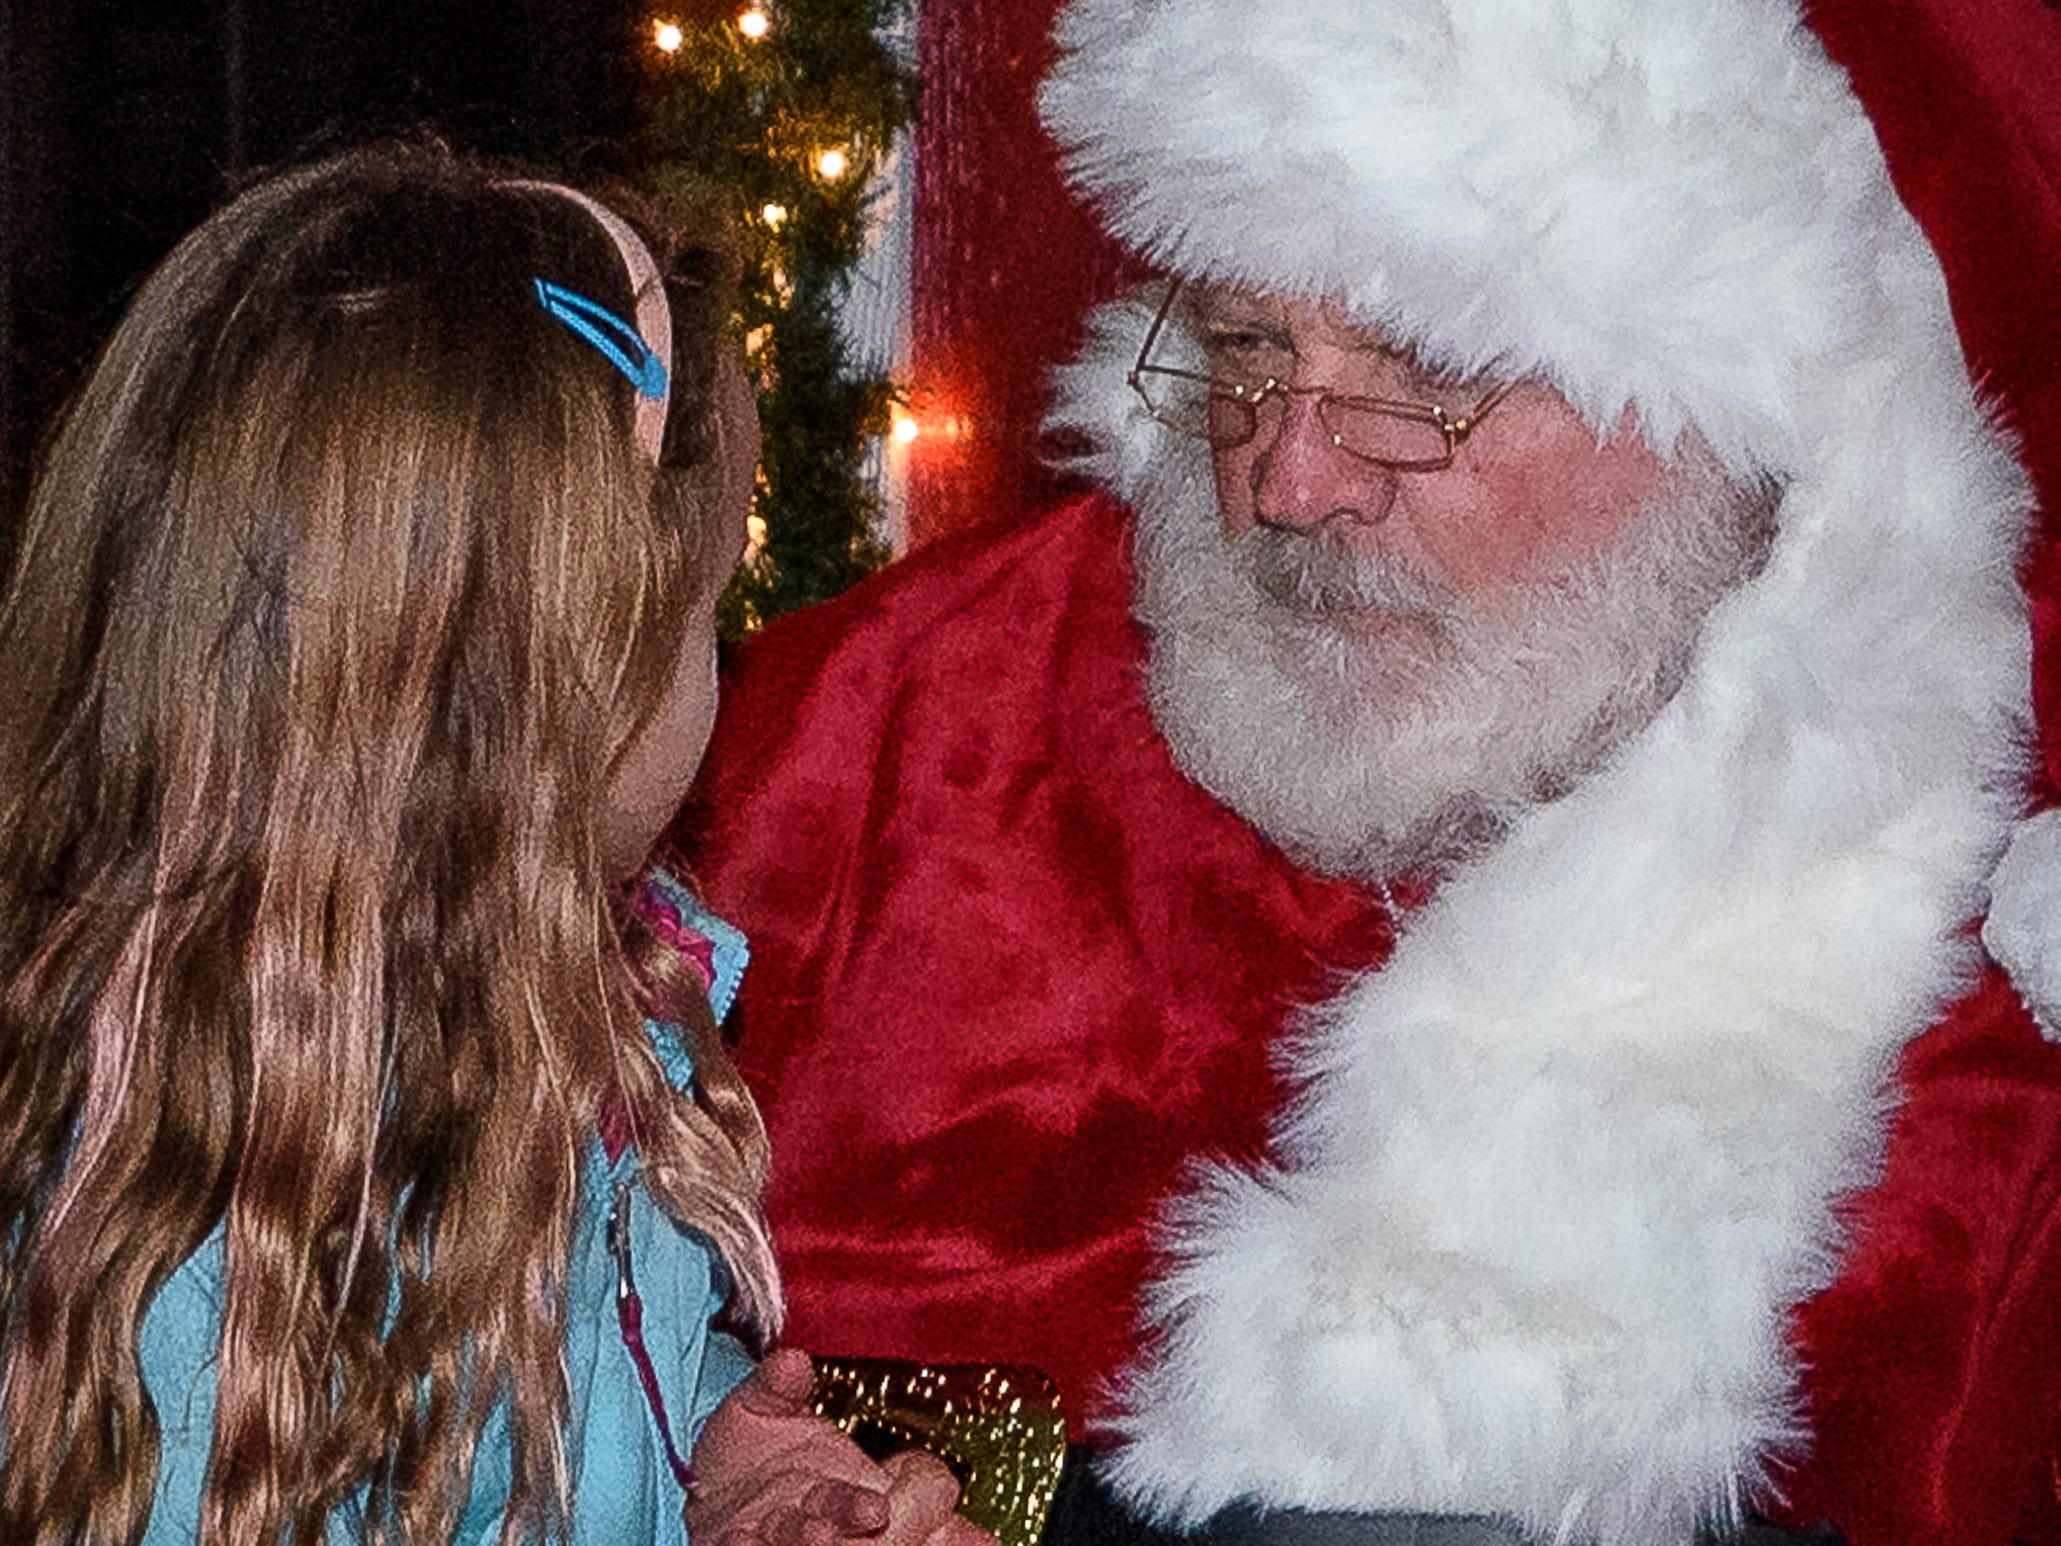 Santa hears the Christmas list from a young girl during Festive Friday on Nov. 23.